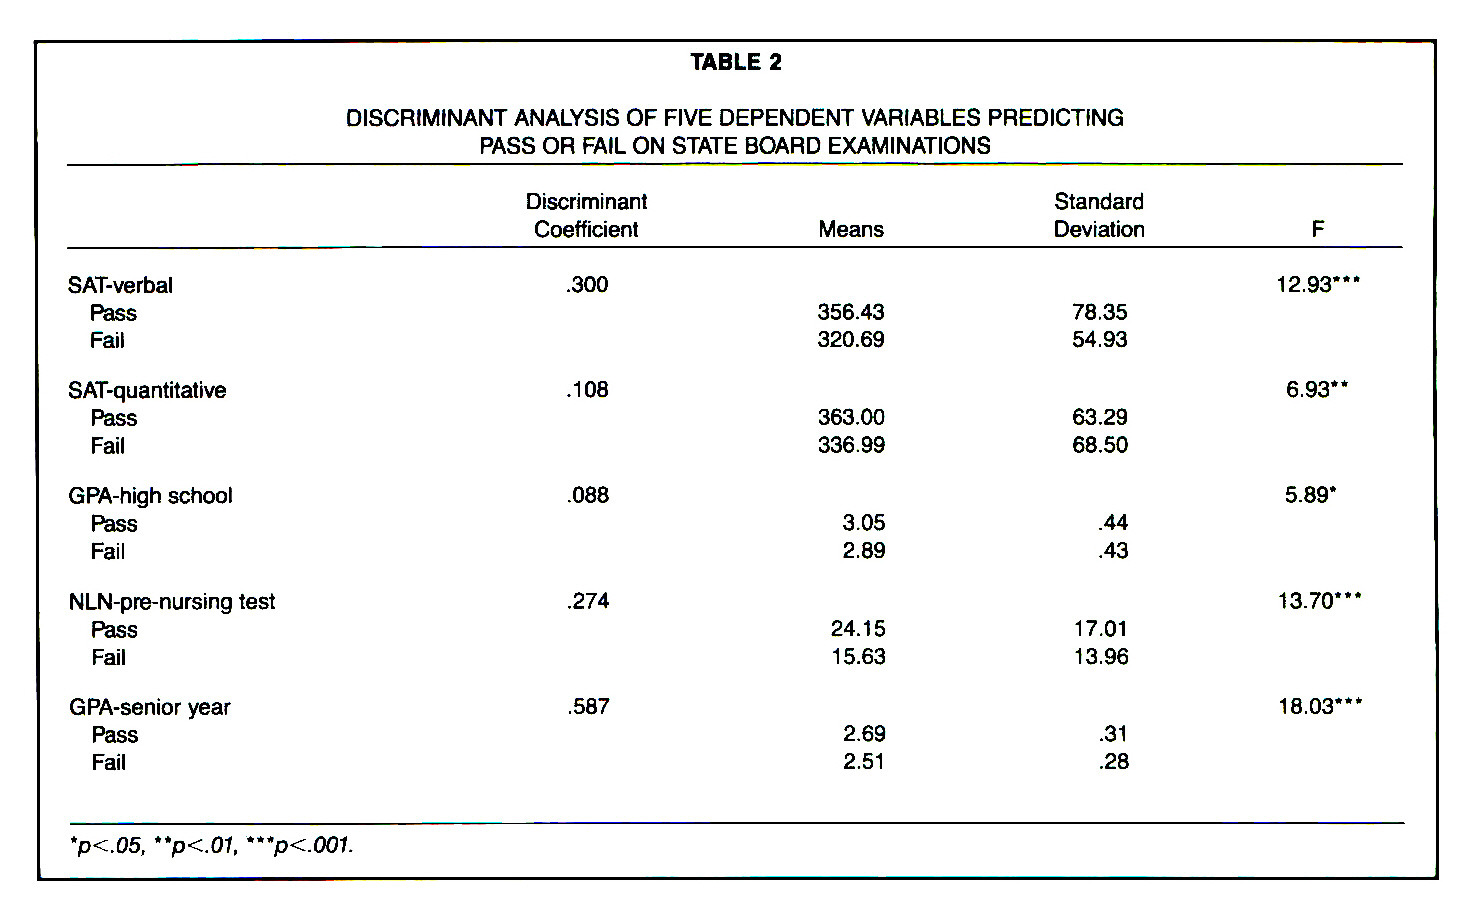 TABLE 2DISCRIMINANT ANALYSIS OF FIVE DEPENDENT VARIABLES PREDICTING PASS OR FAIL ON STATE BOARD EXAMINATIONS